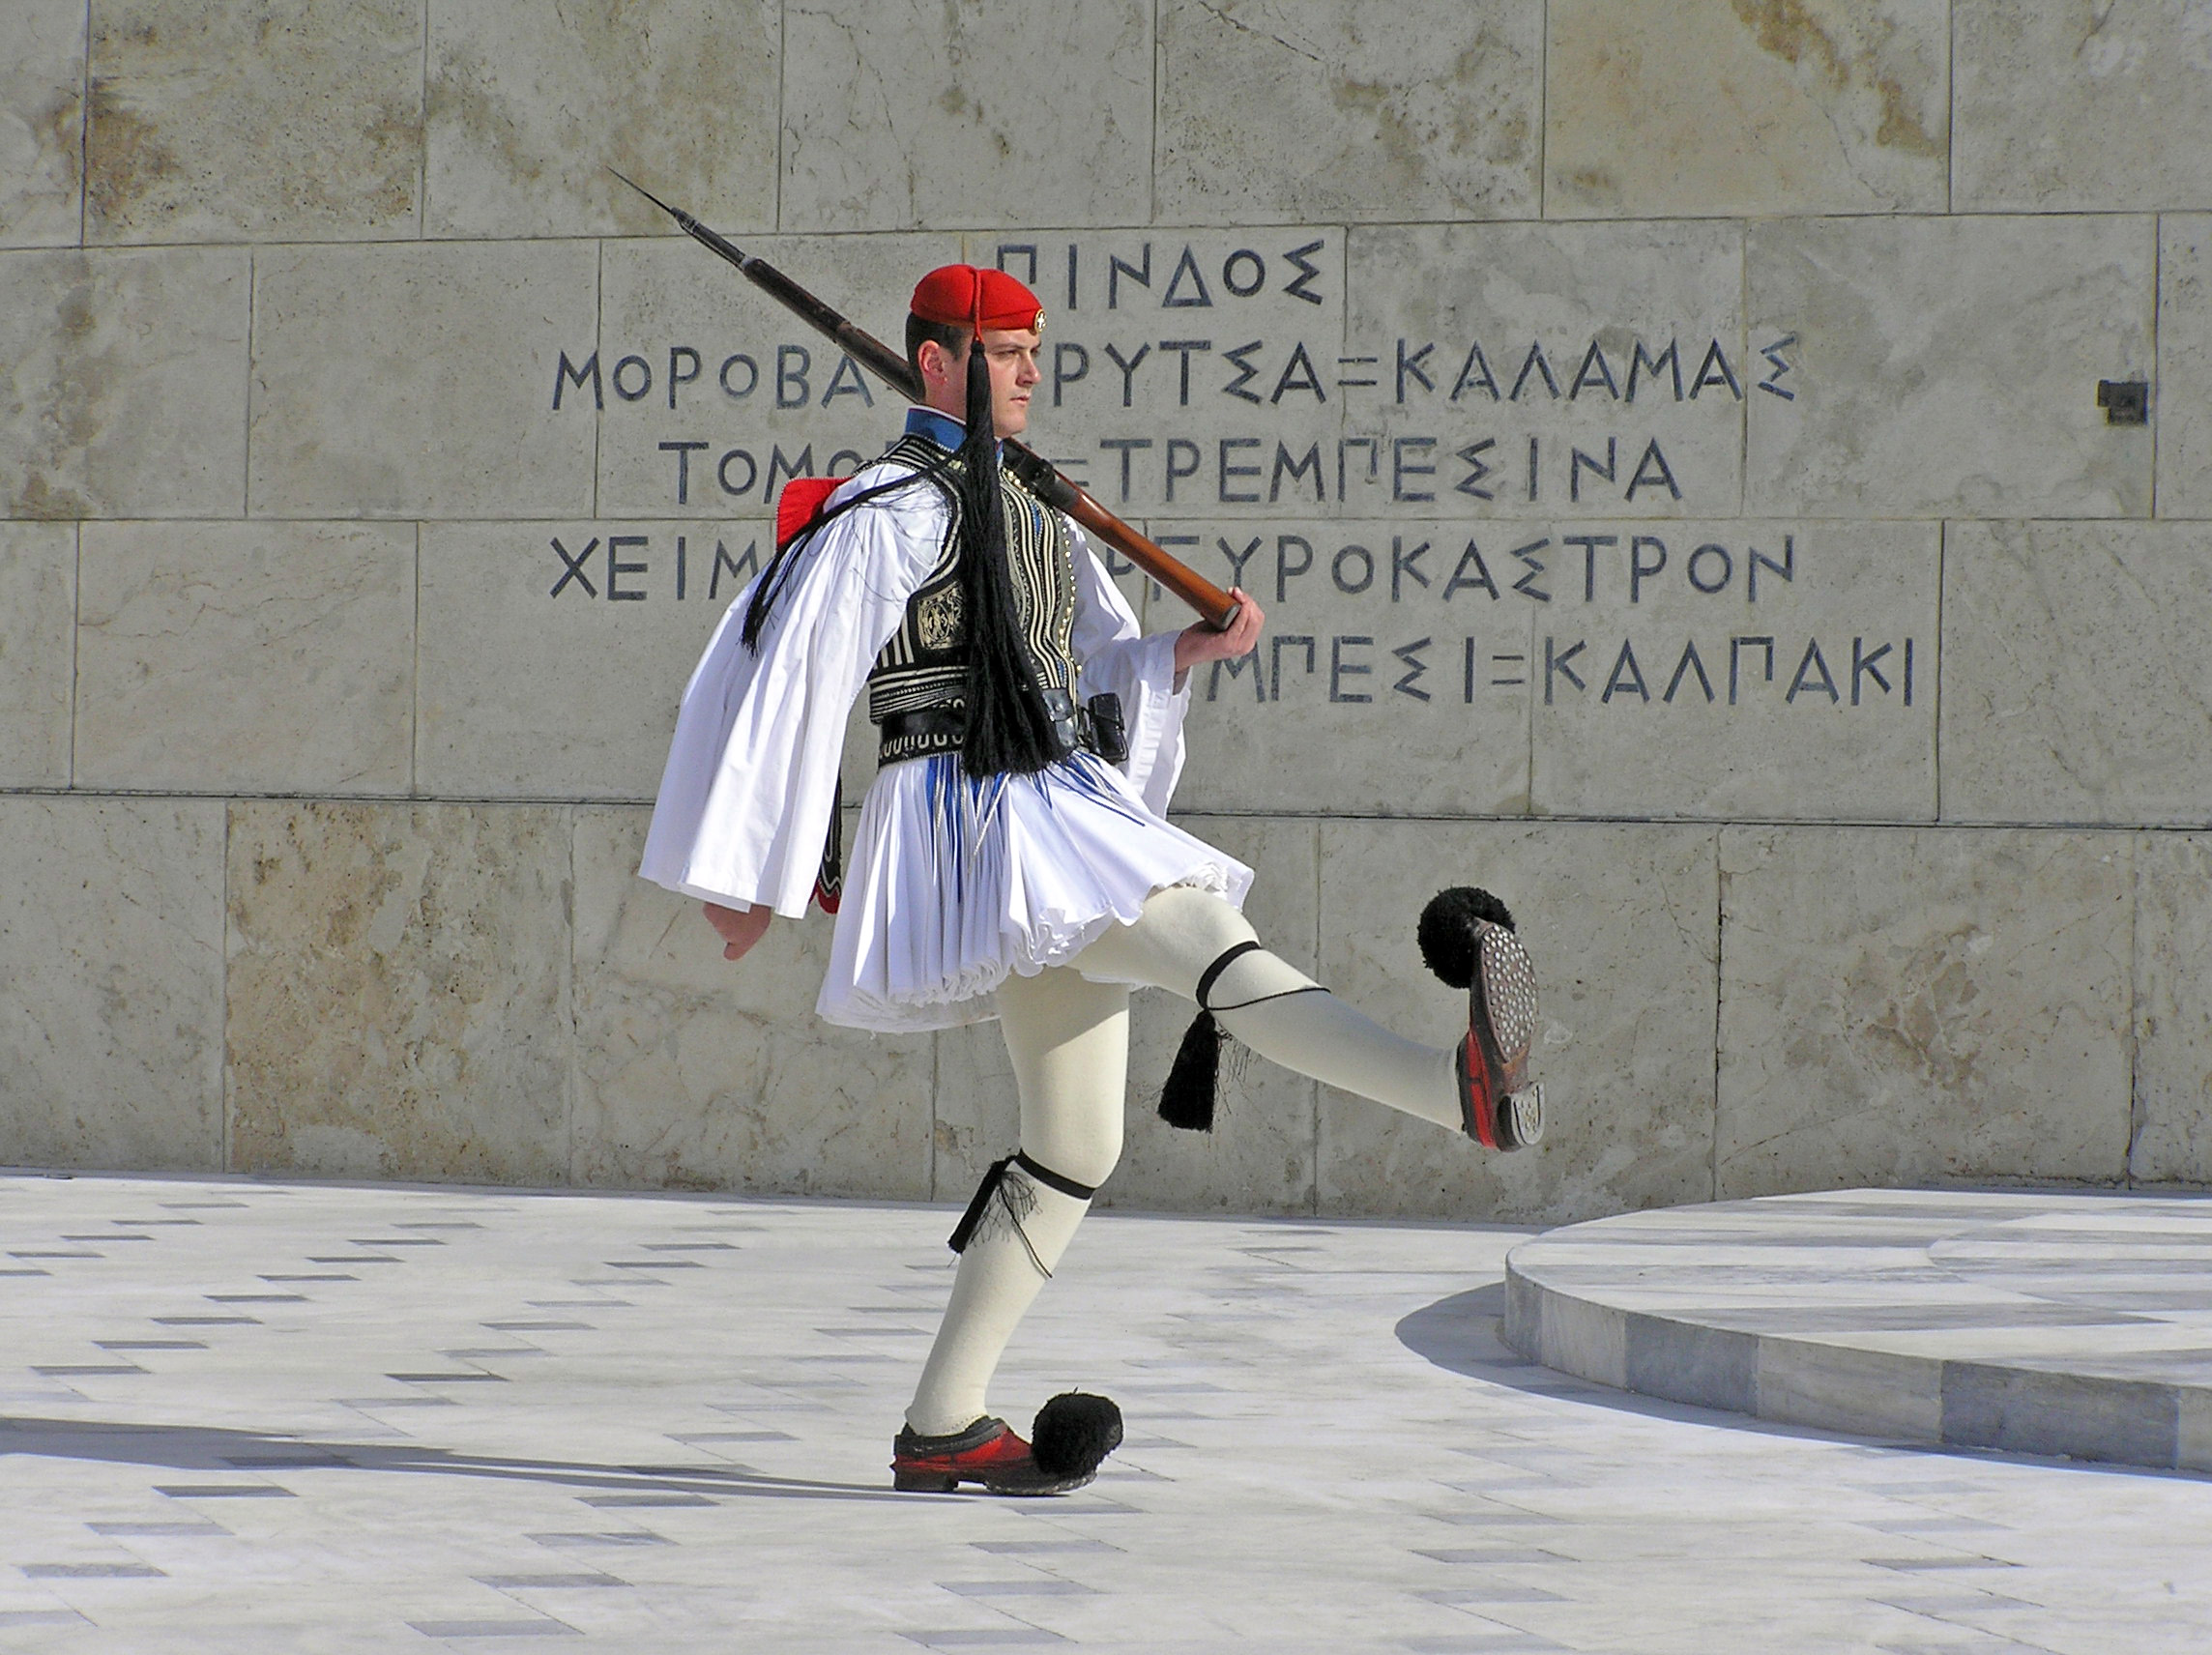 A member of the Greek Presidential Guard, wearing a fustanella.